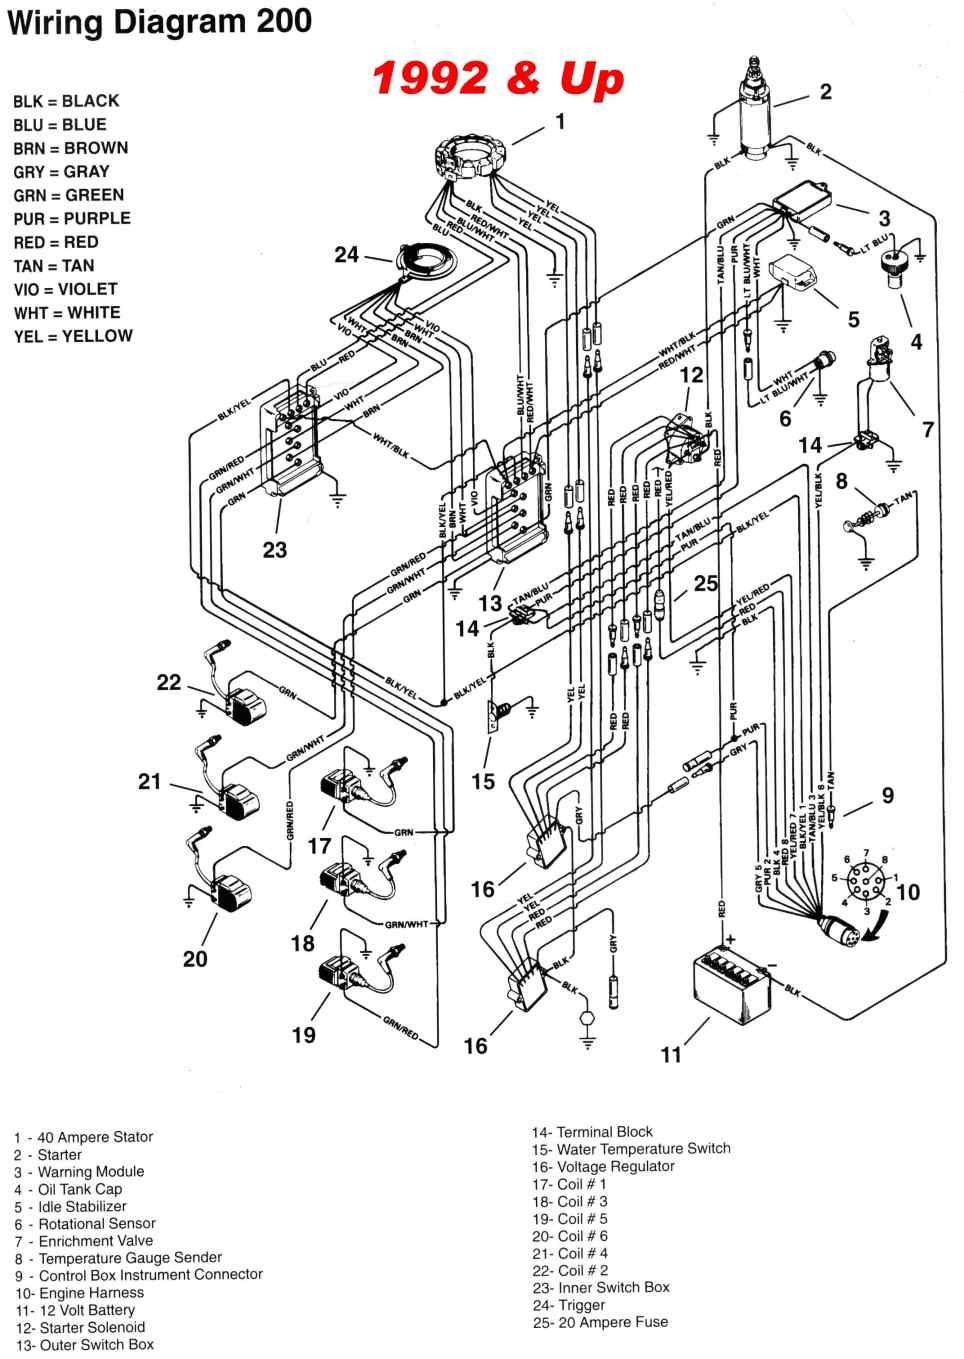 4 3 Vortec Wiring Diagram Coil. Th350 Wiring Diagram, 5.3